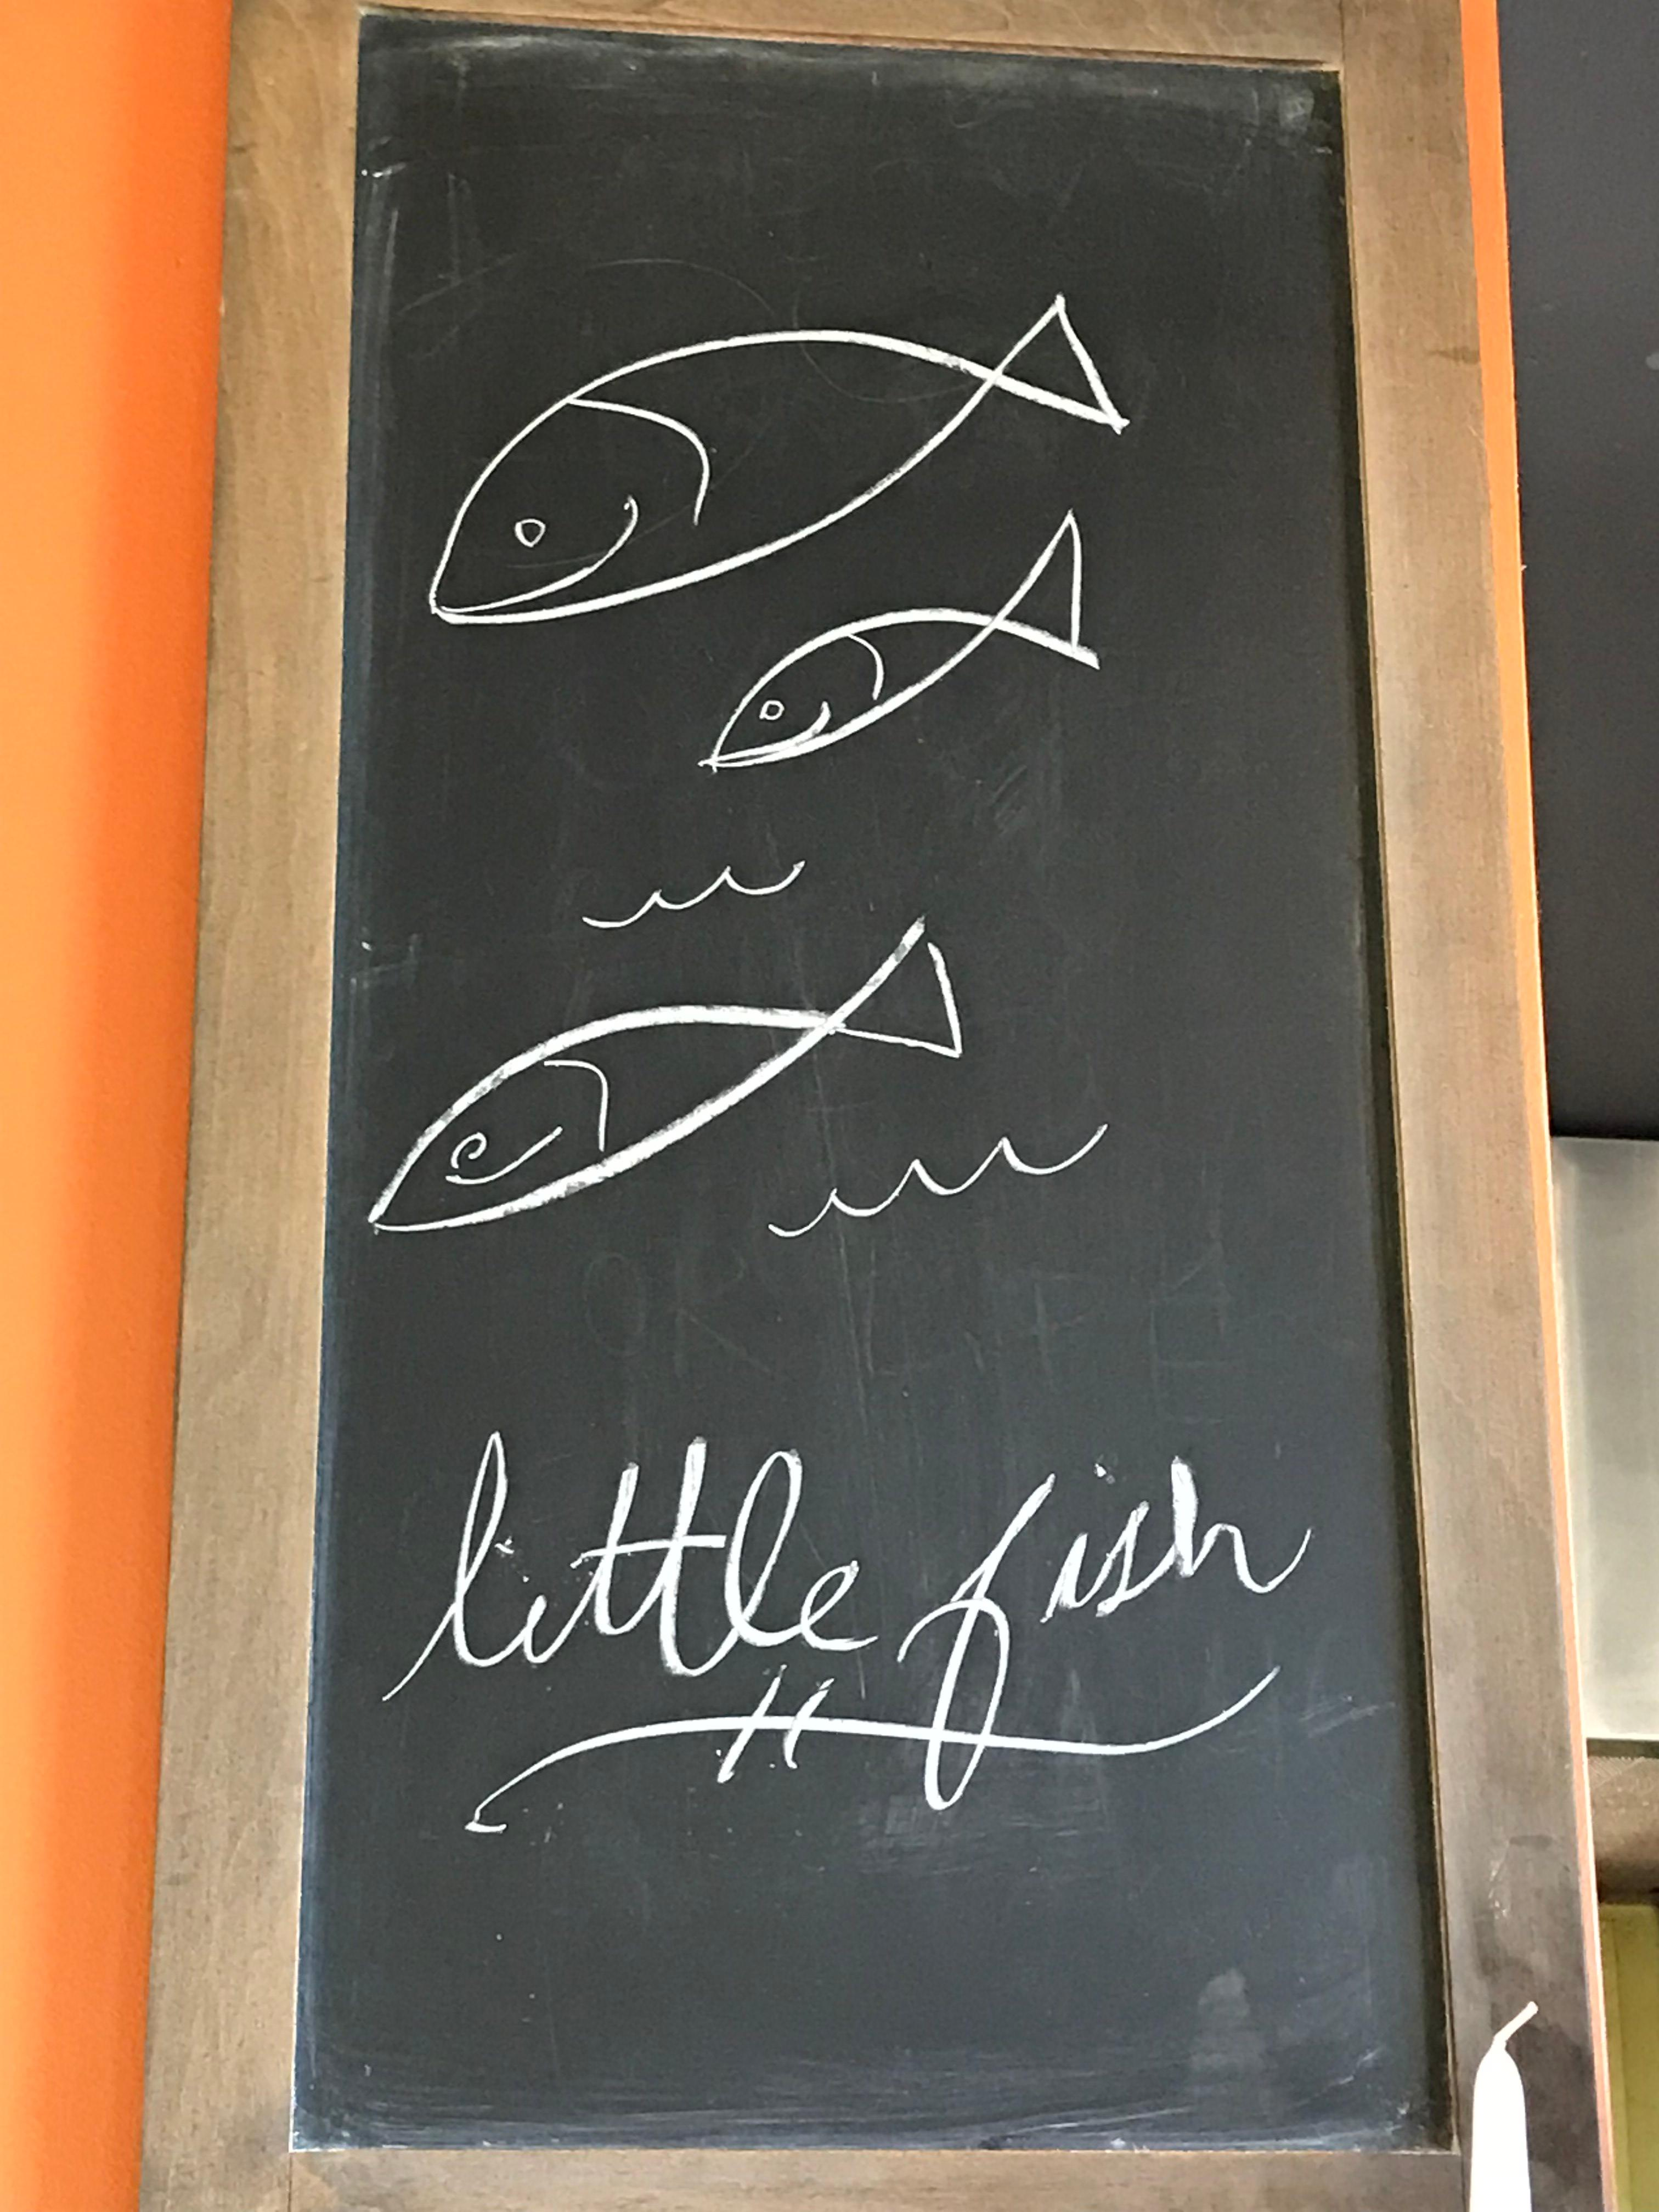 Little Fish at Cicchetti. (Image: Frank Guanco)